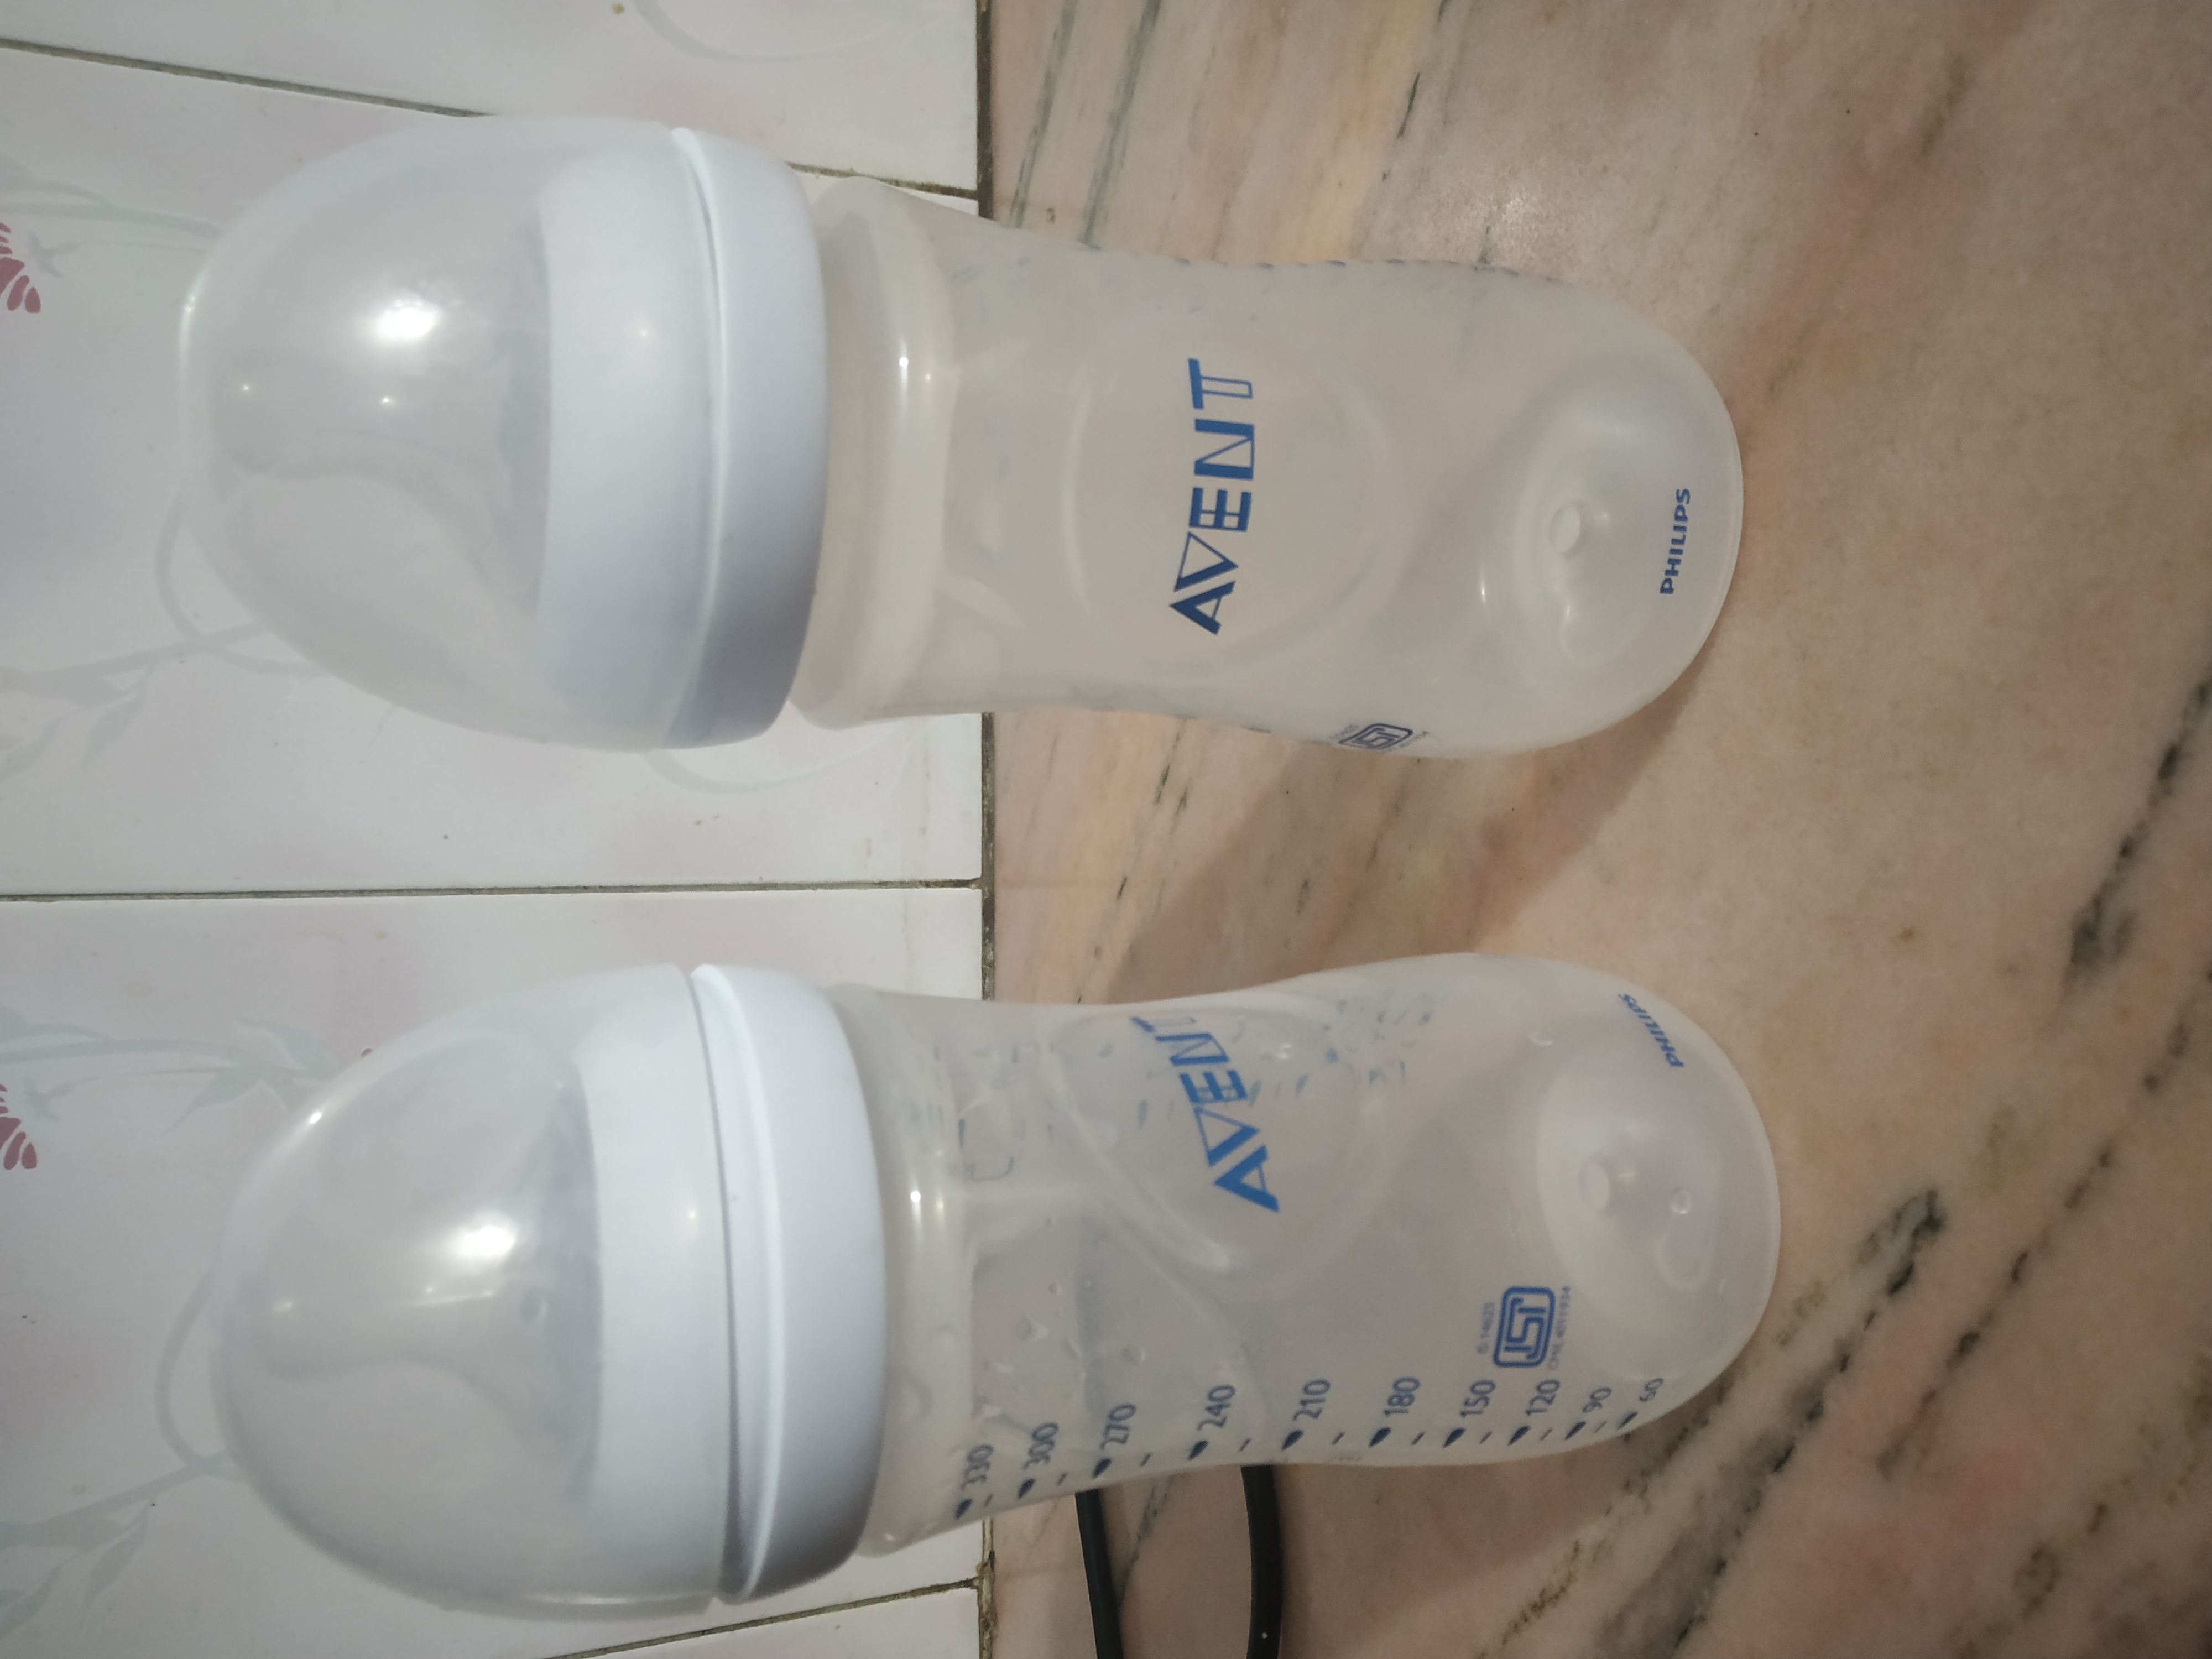 Philips Avent Anti-Colic Bottle With Airfree Vent-Easy to feed child-By sandhyasingh